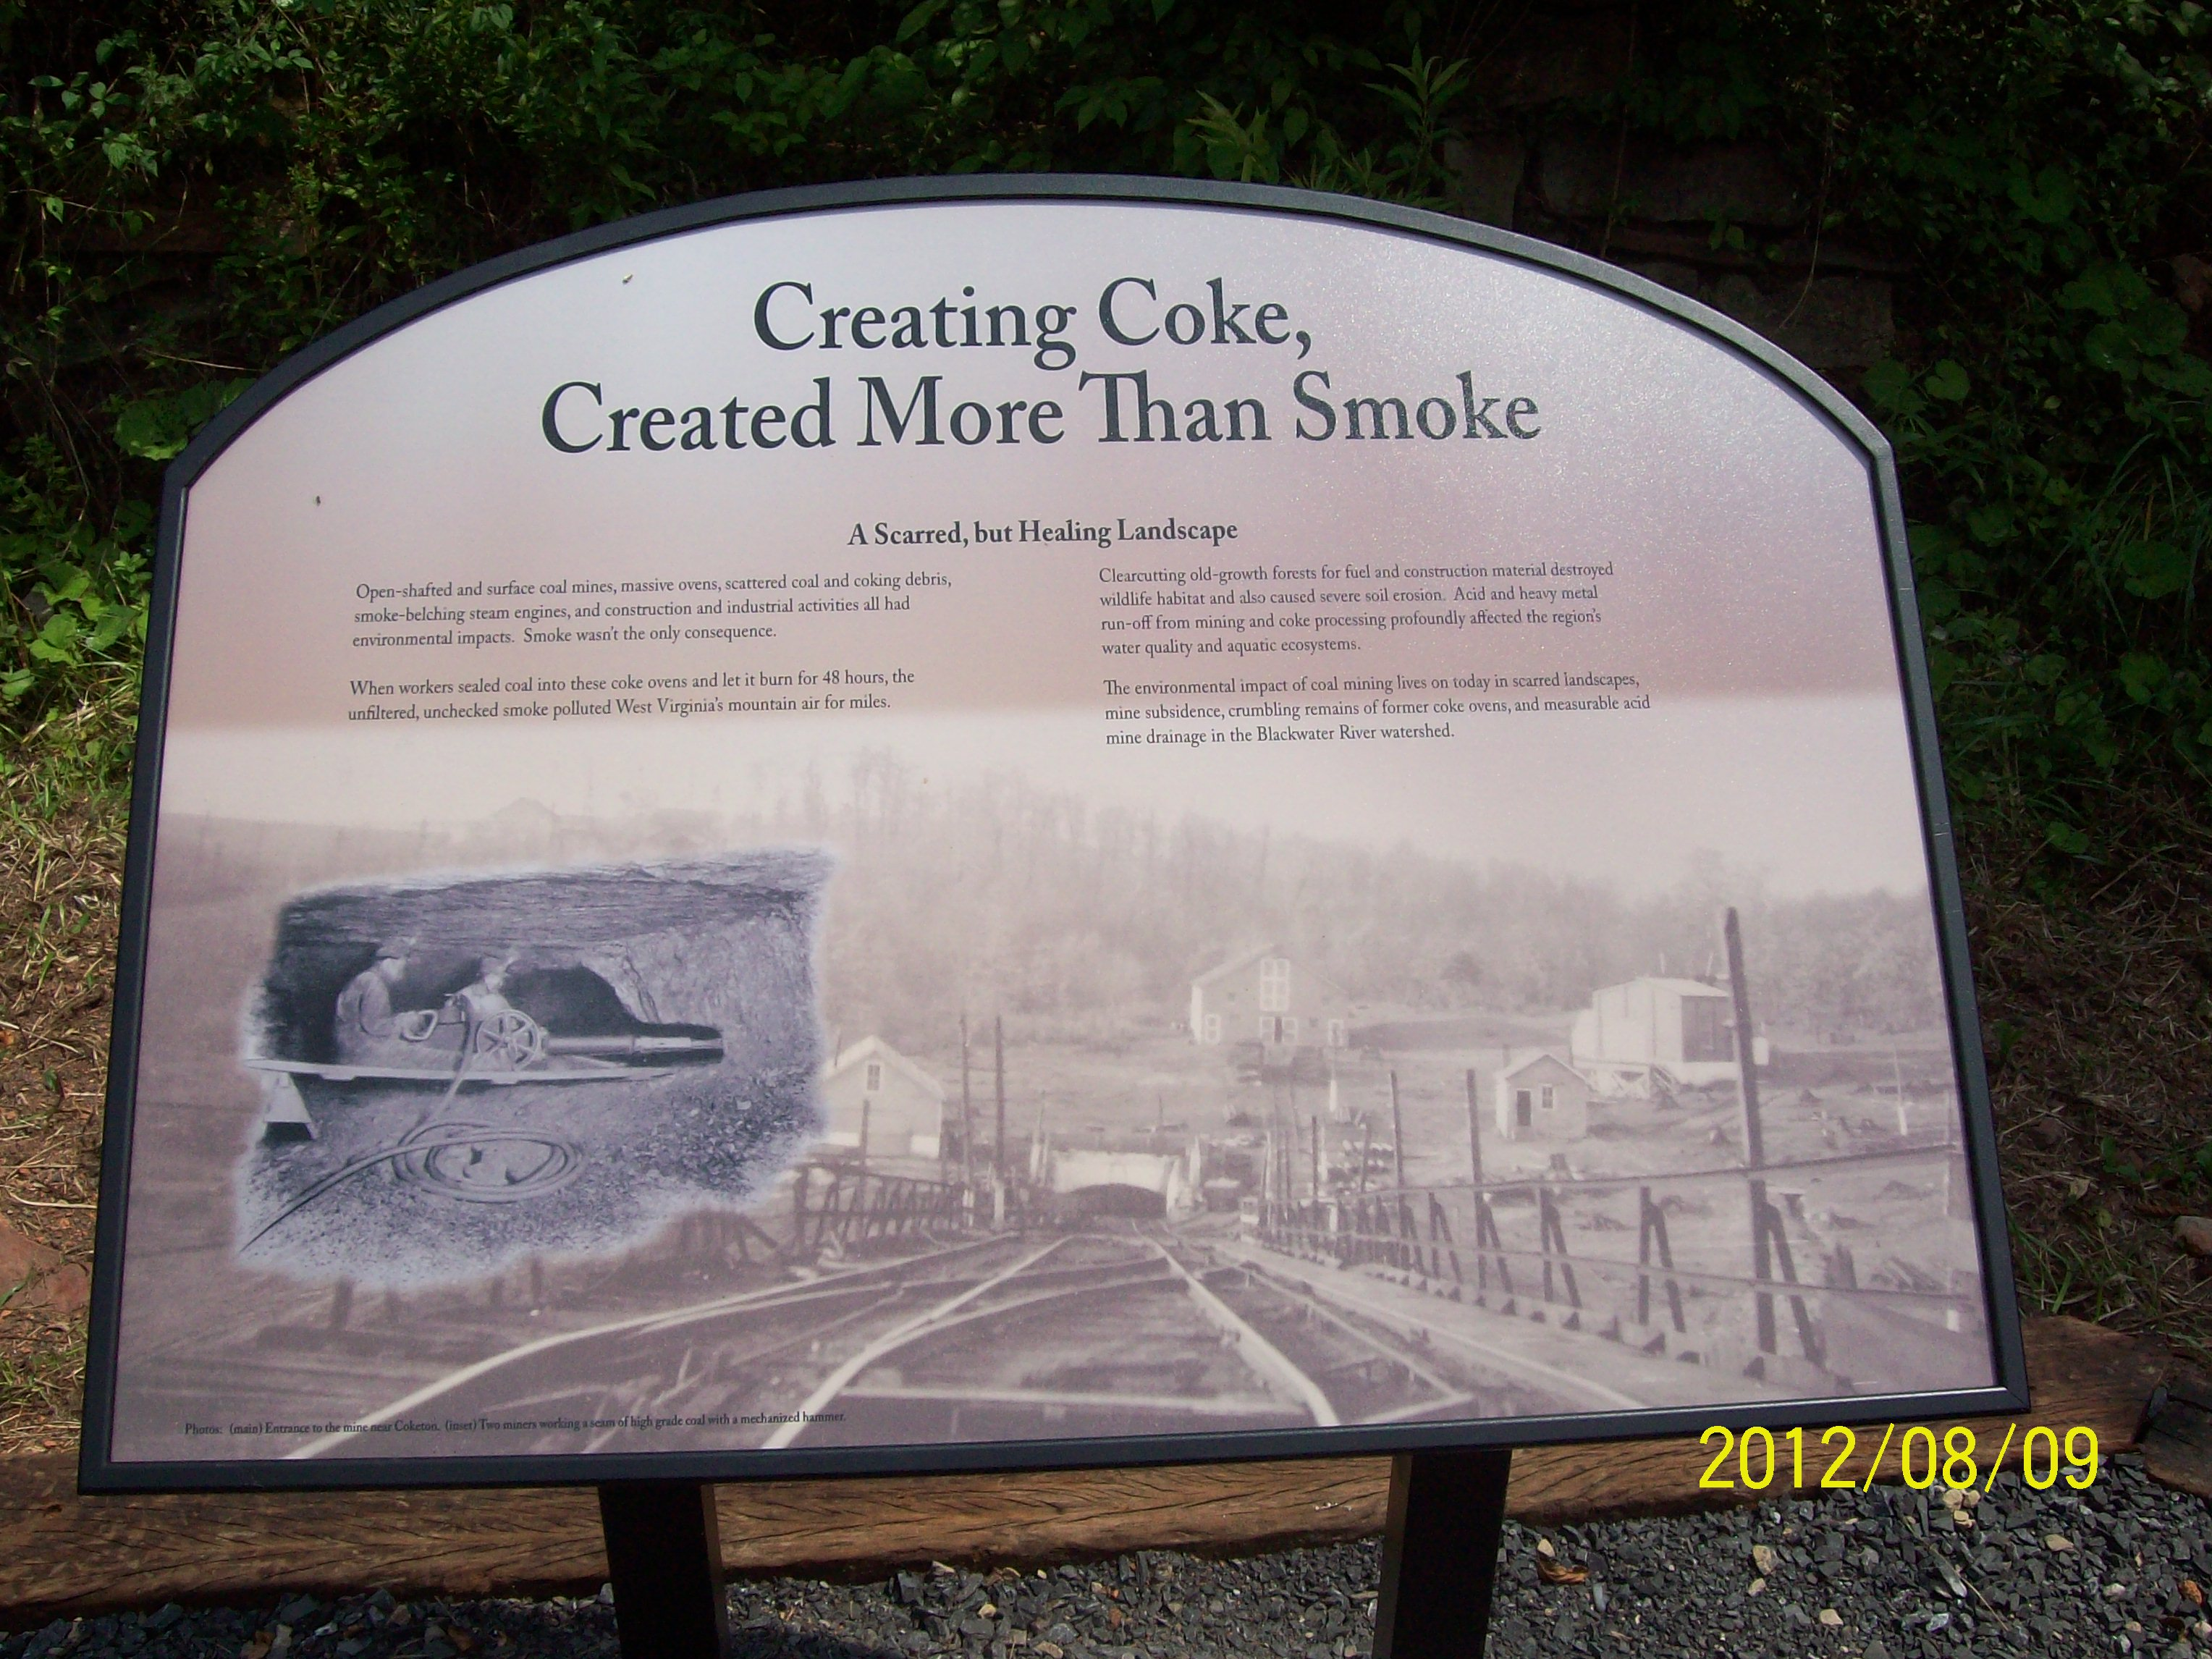 second sign about the coke ovens made by FOB